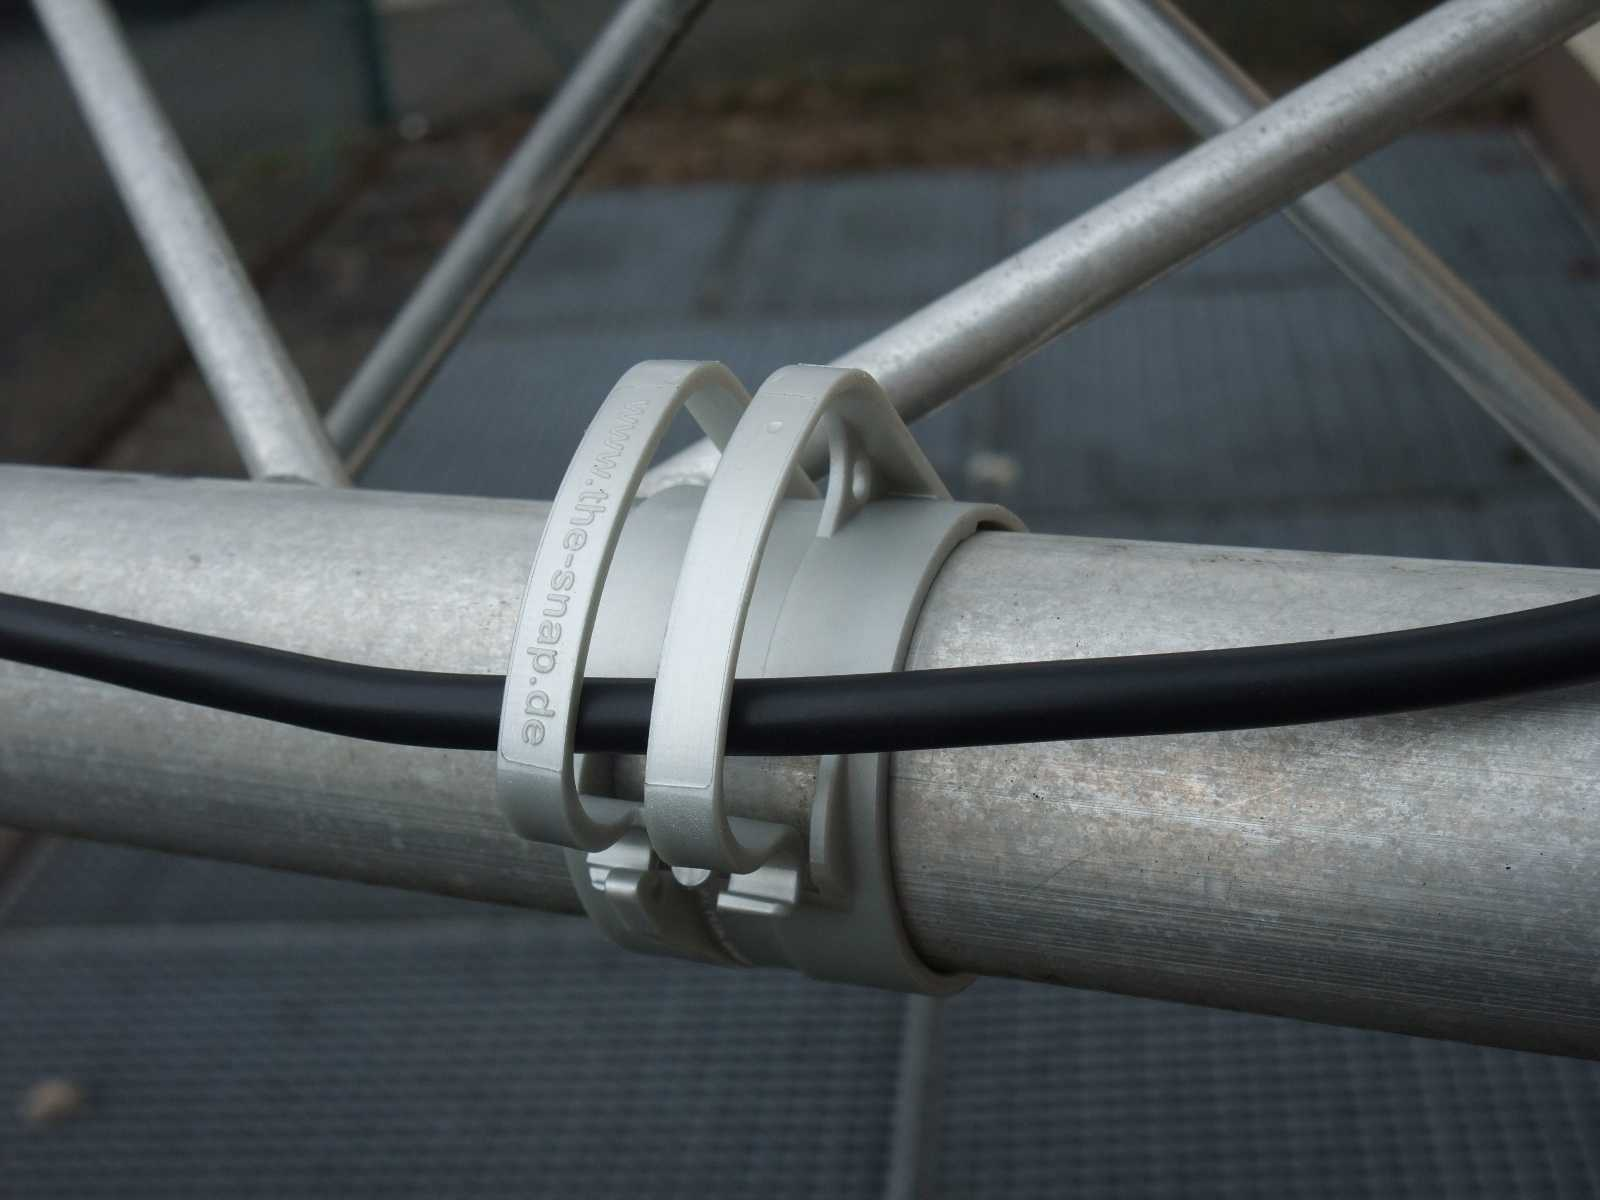 The Snap Light Zeva Cable Holder Clamp for Truss pipe, mounting bracket